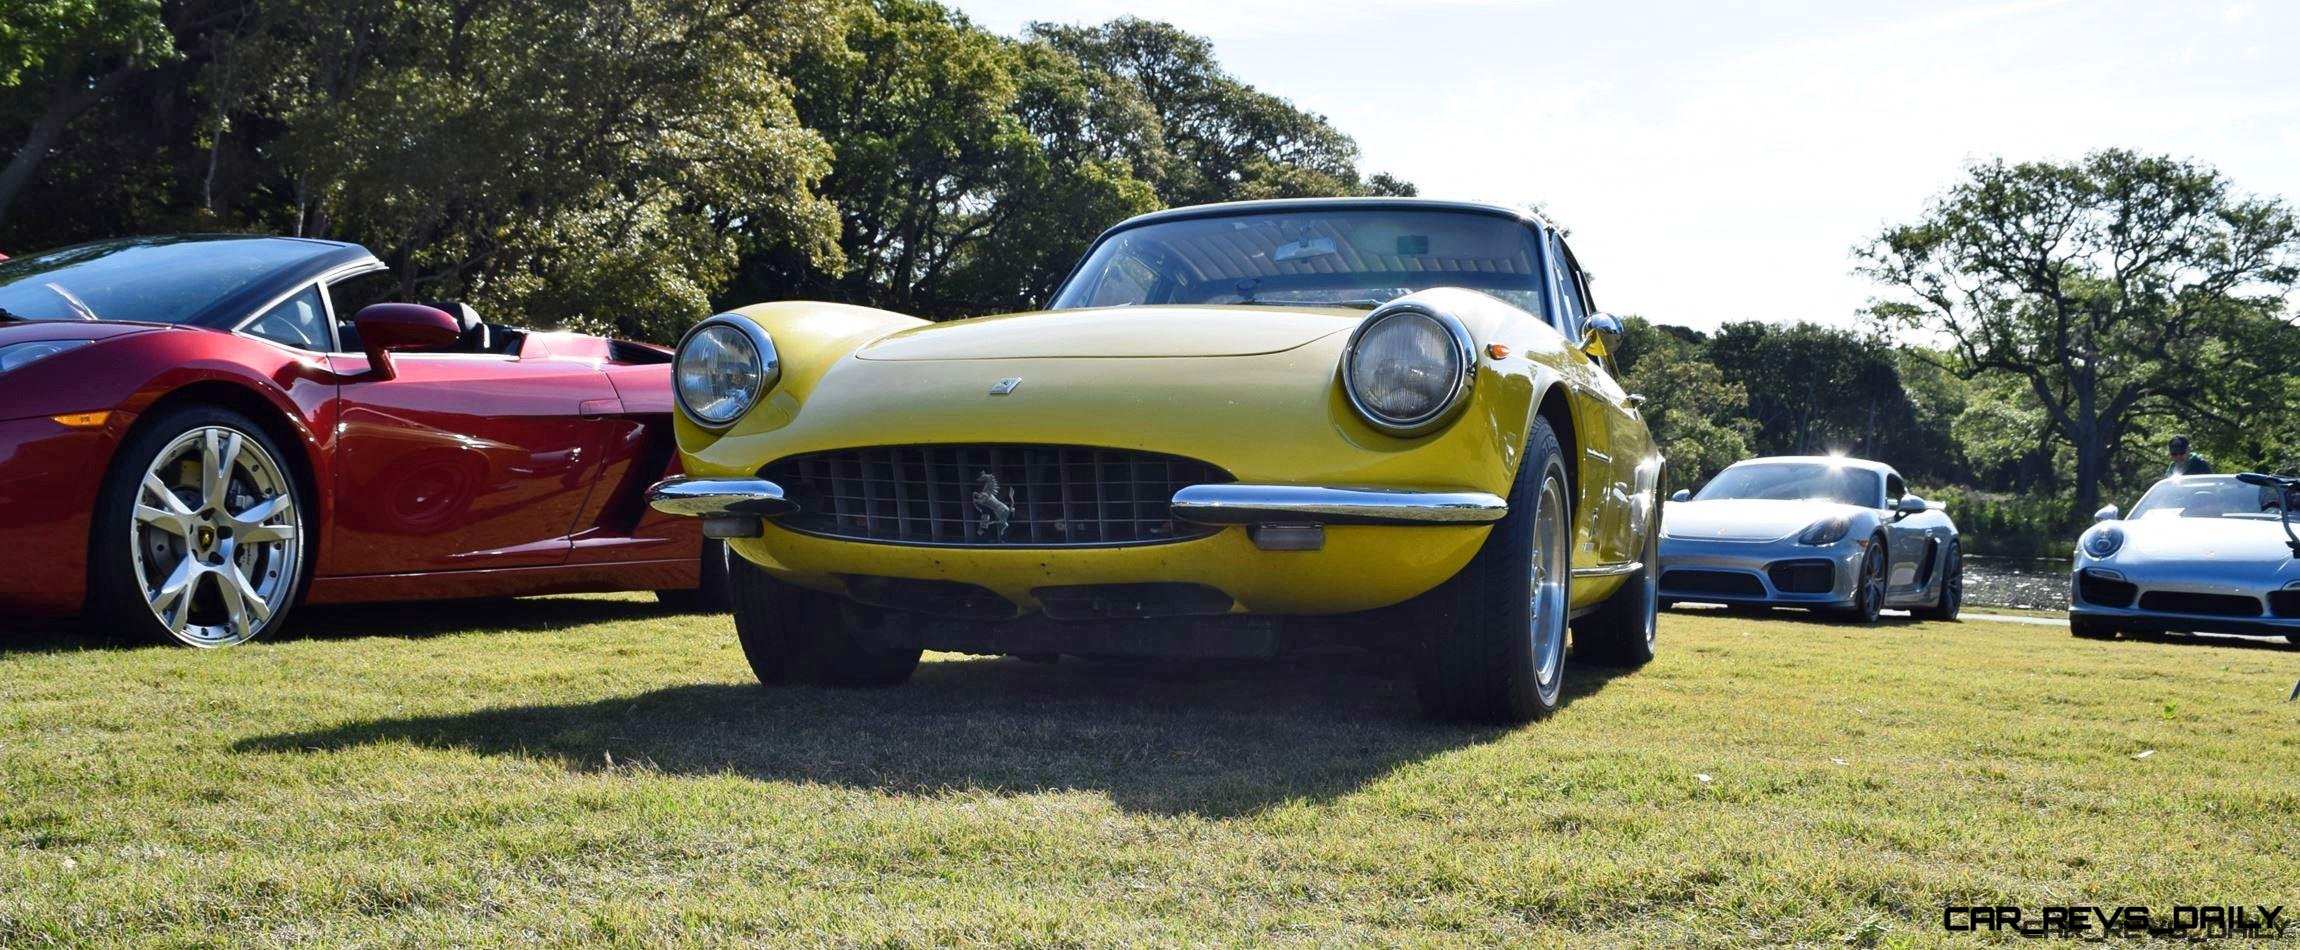 1967 Ferrari 330GTC in Giallo Fly 11